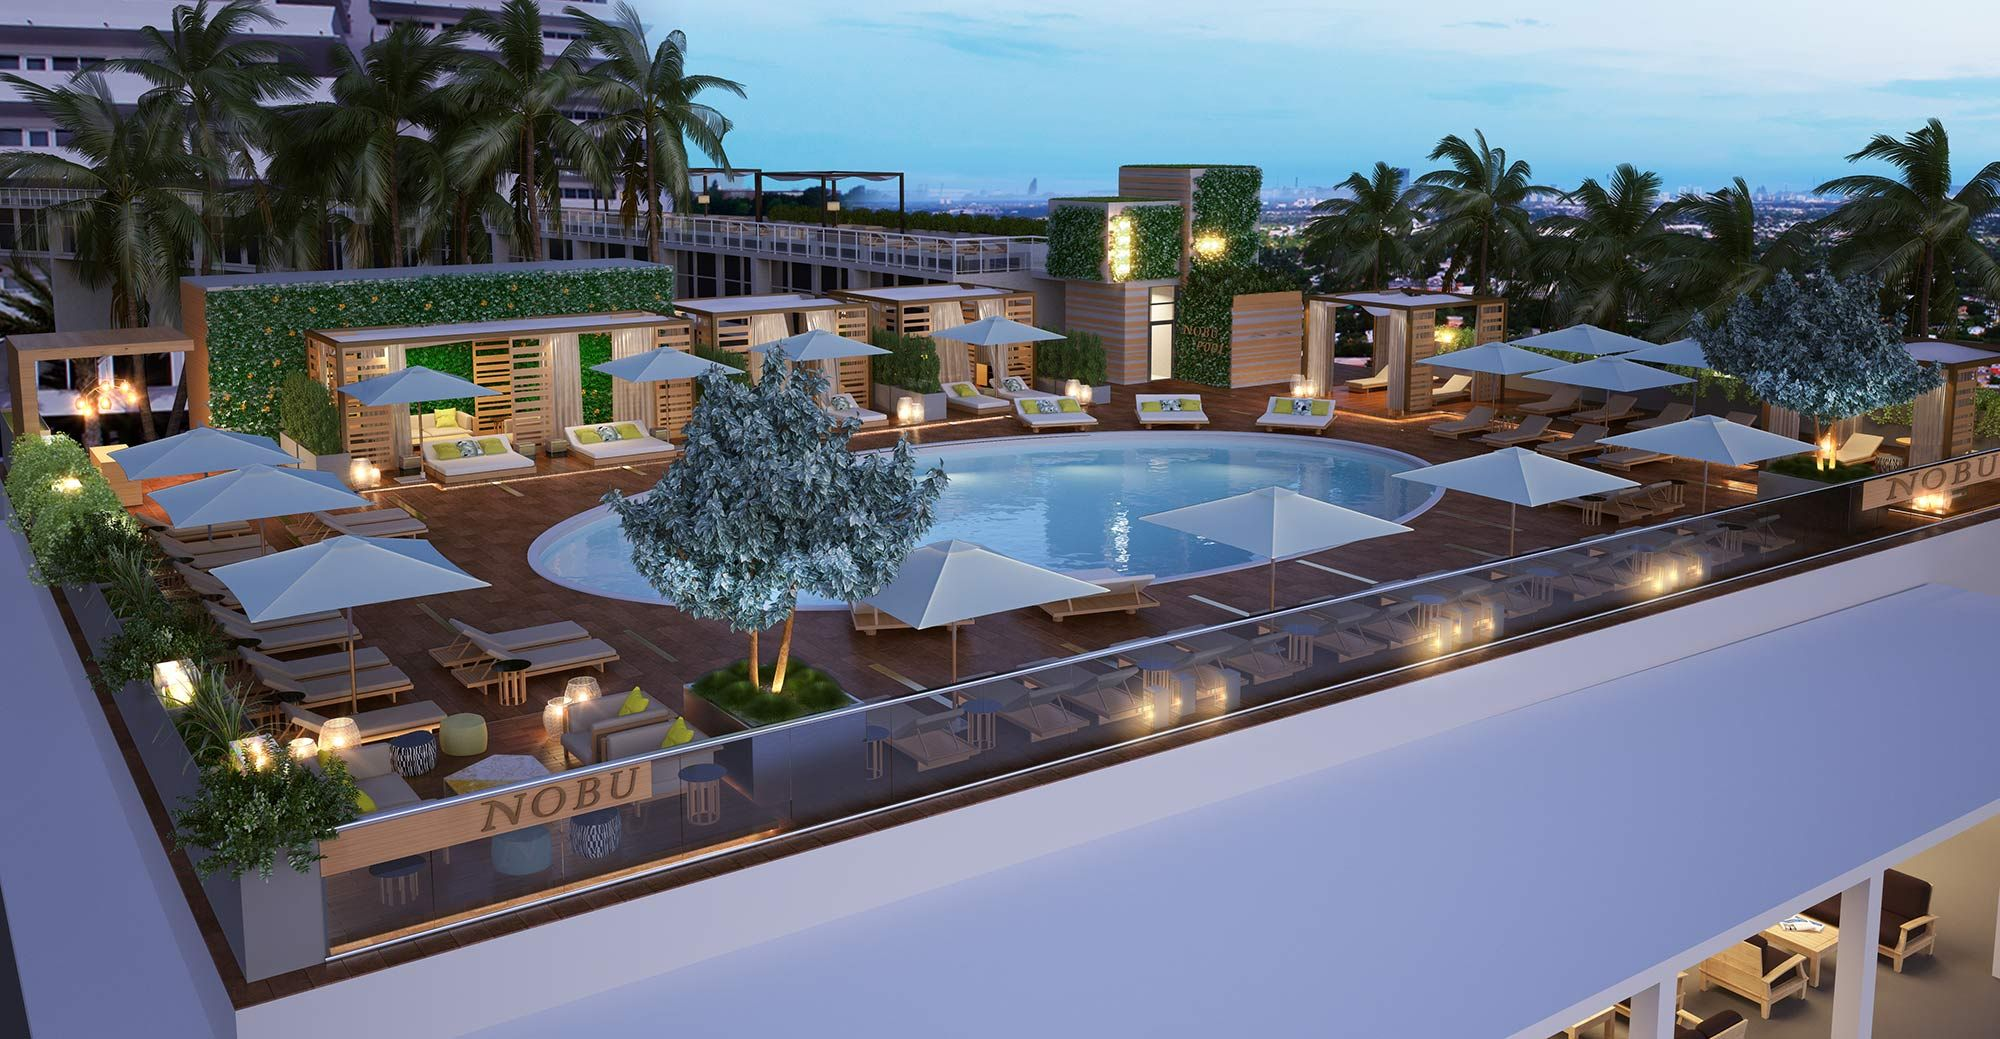 Luxury hotels in miami beach eden roc artistry of the future south beach